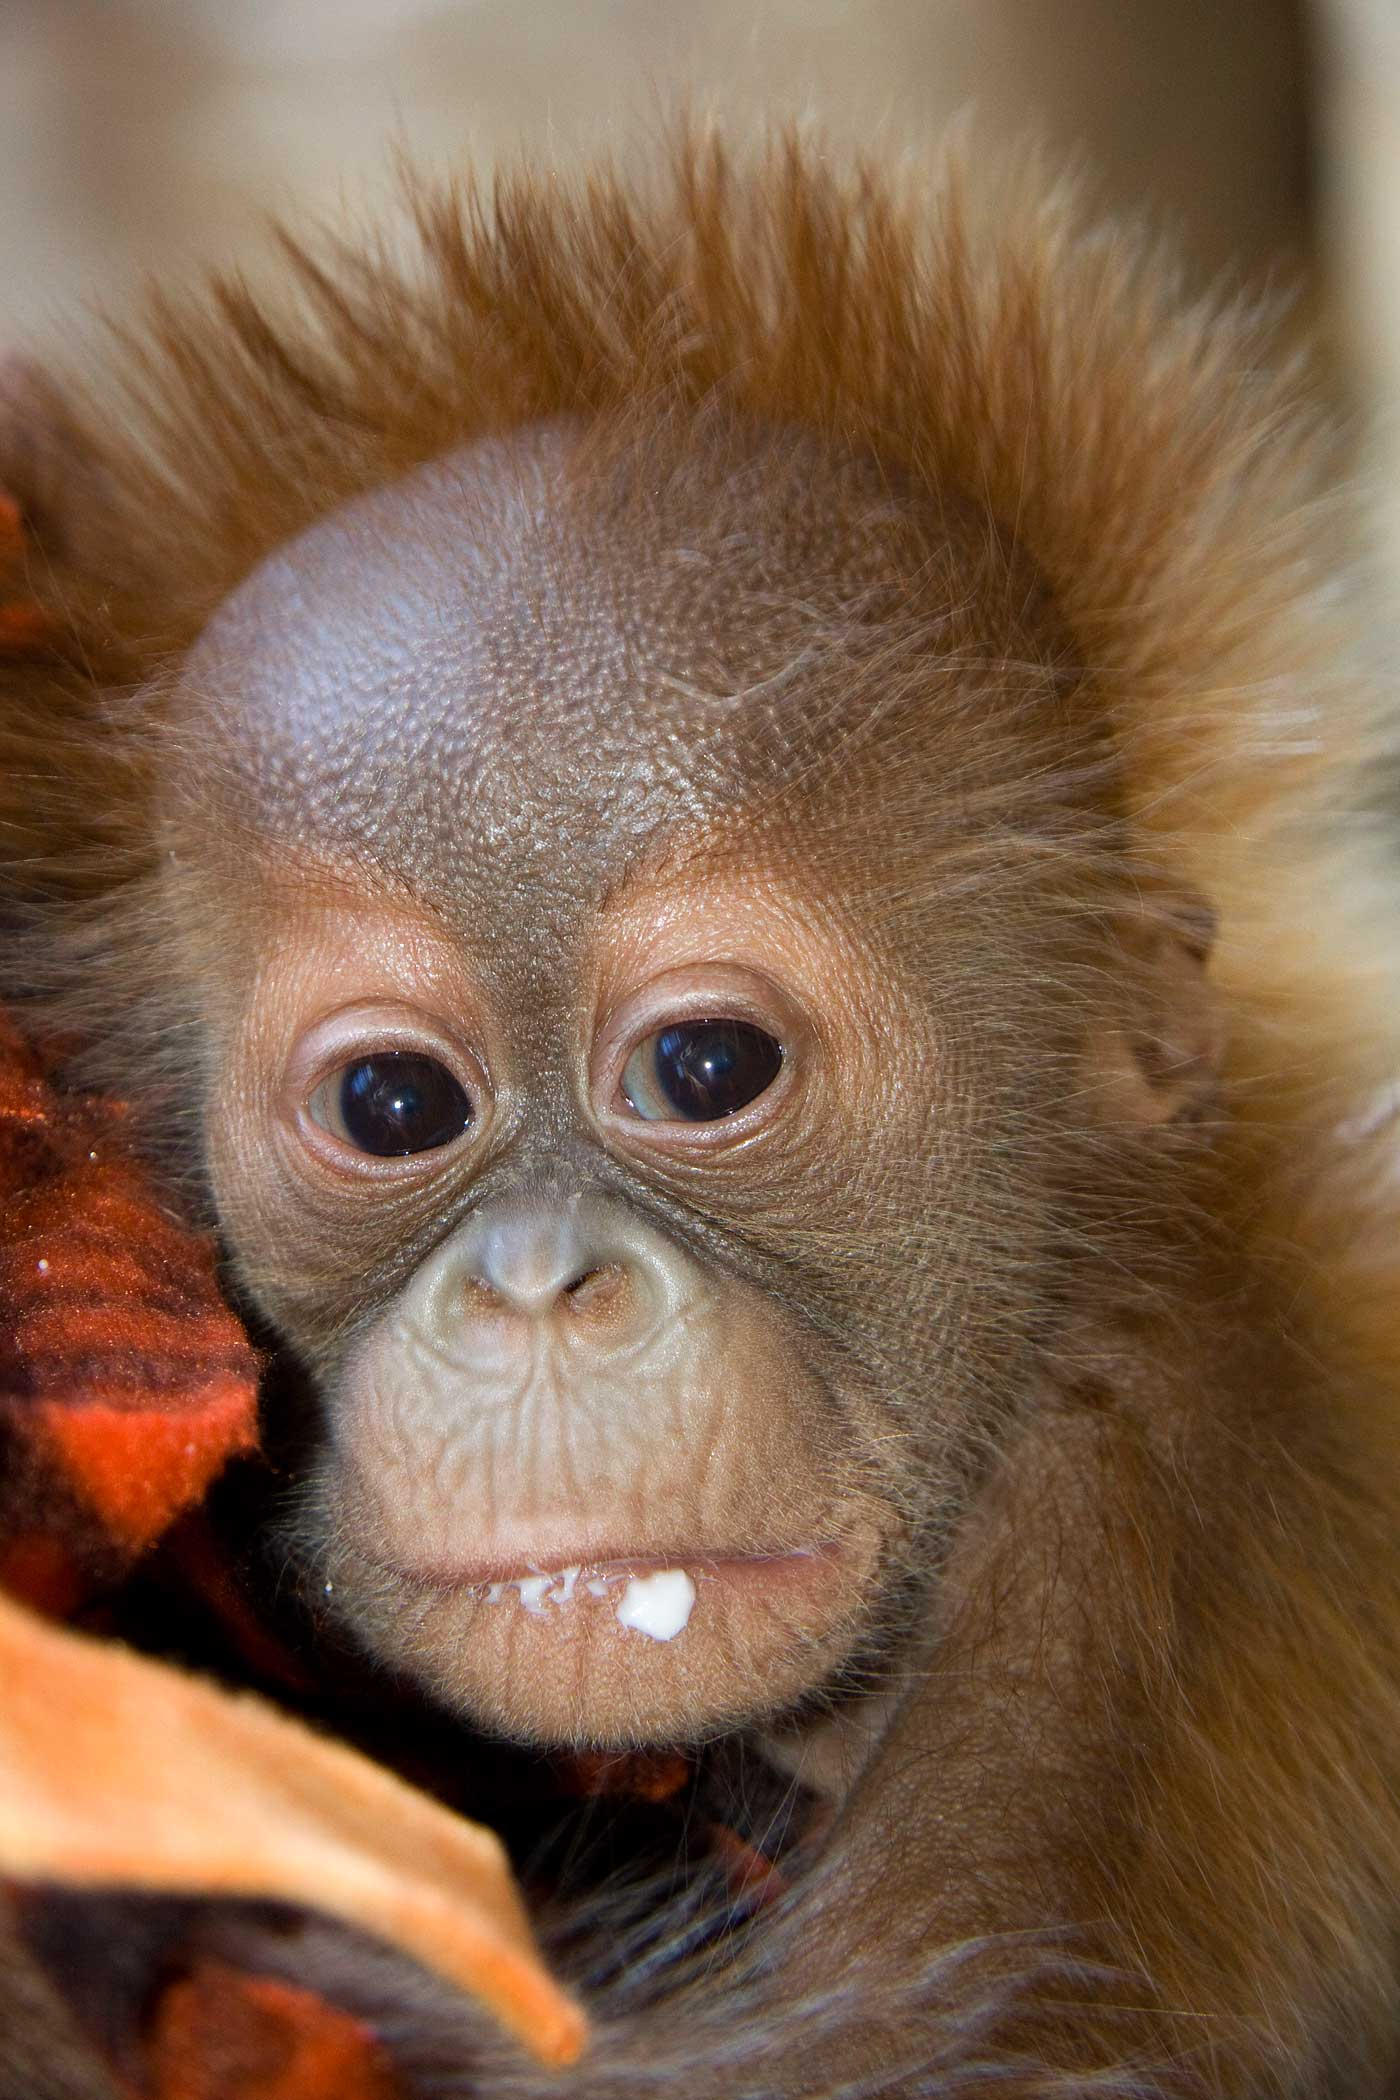 Denver Zoo Helps Orangutan Mother With New Infant